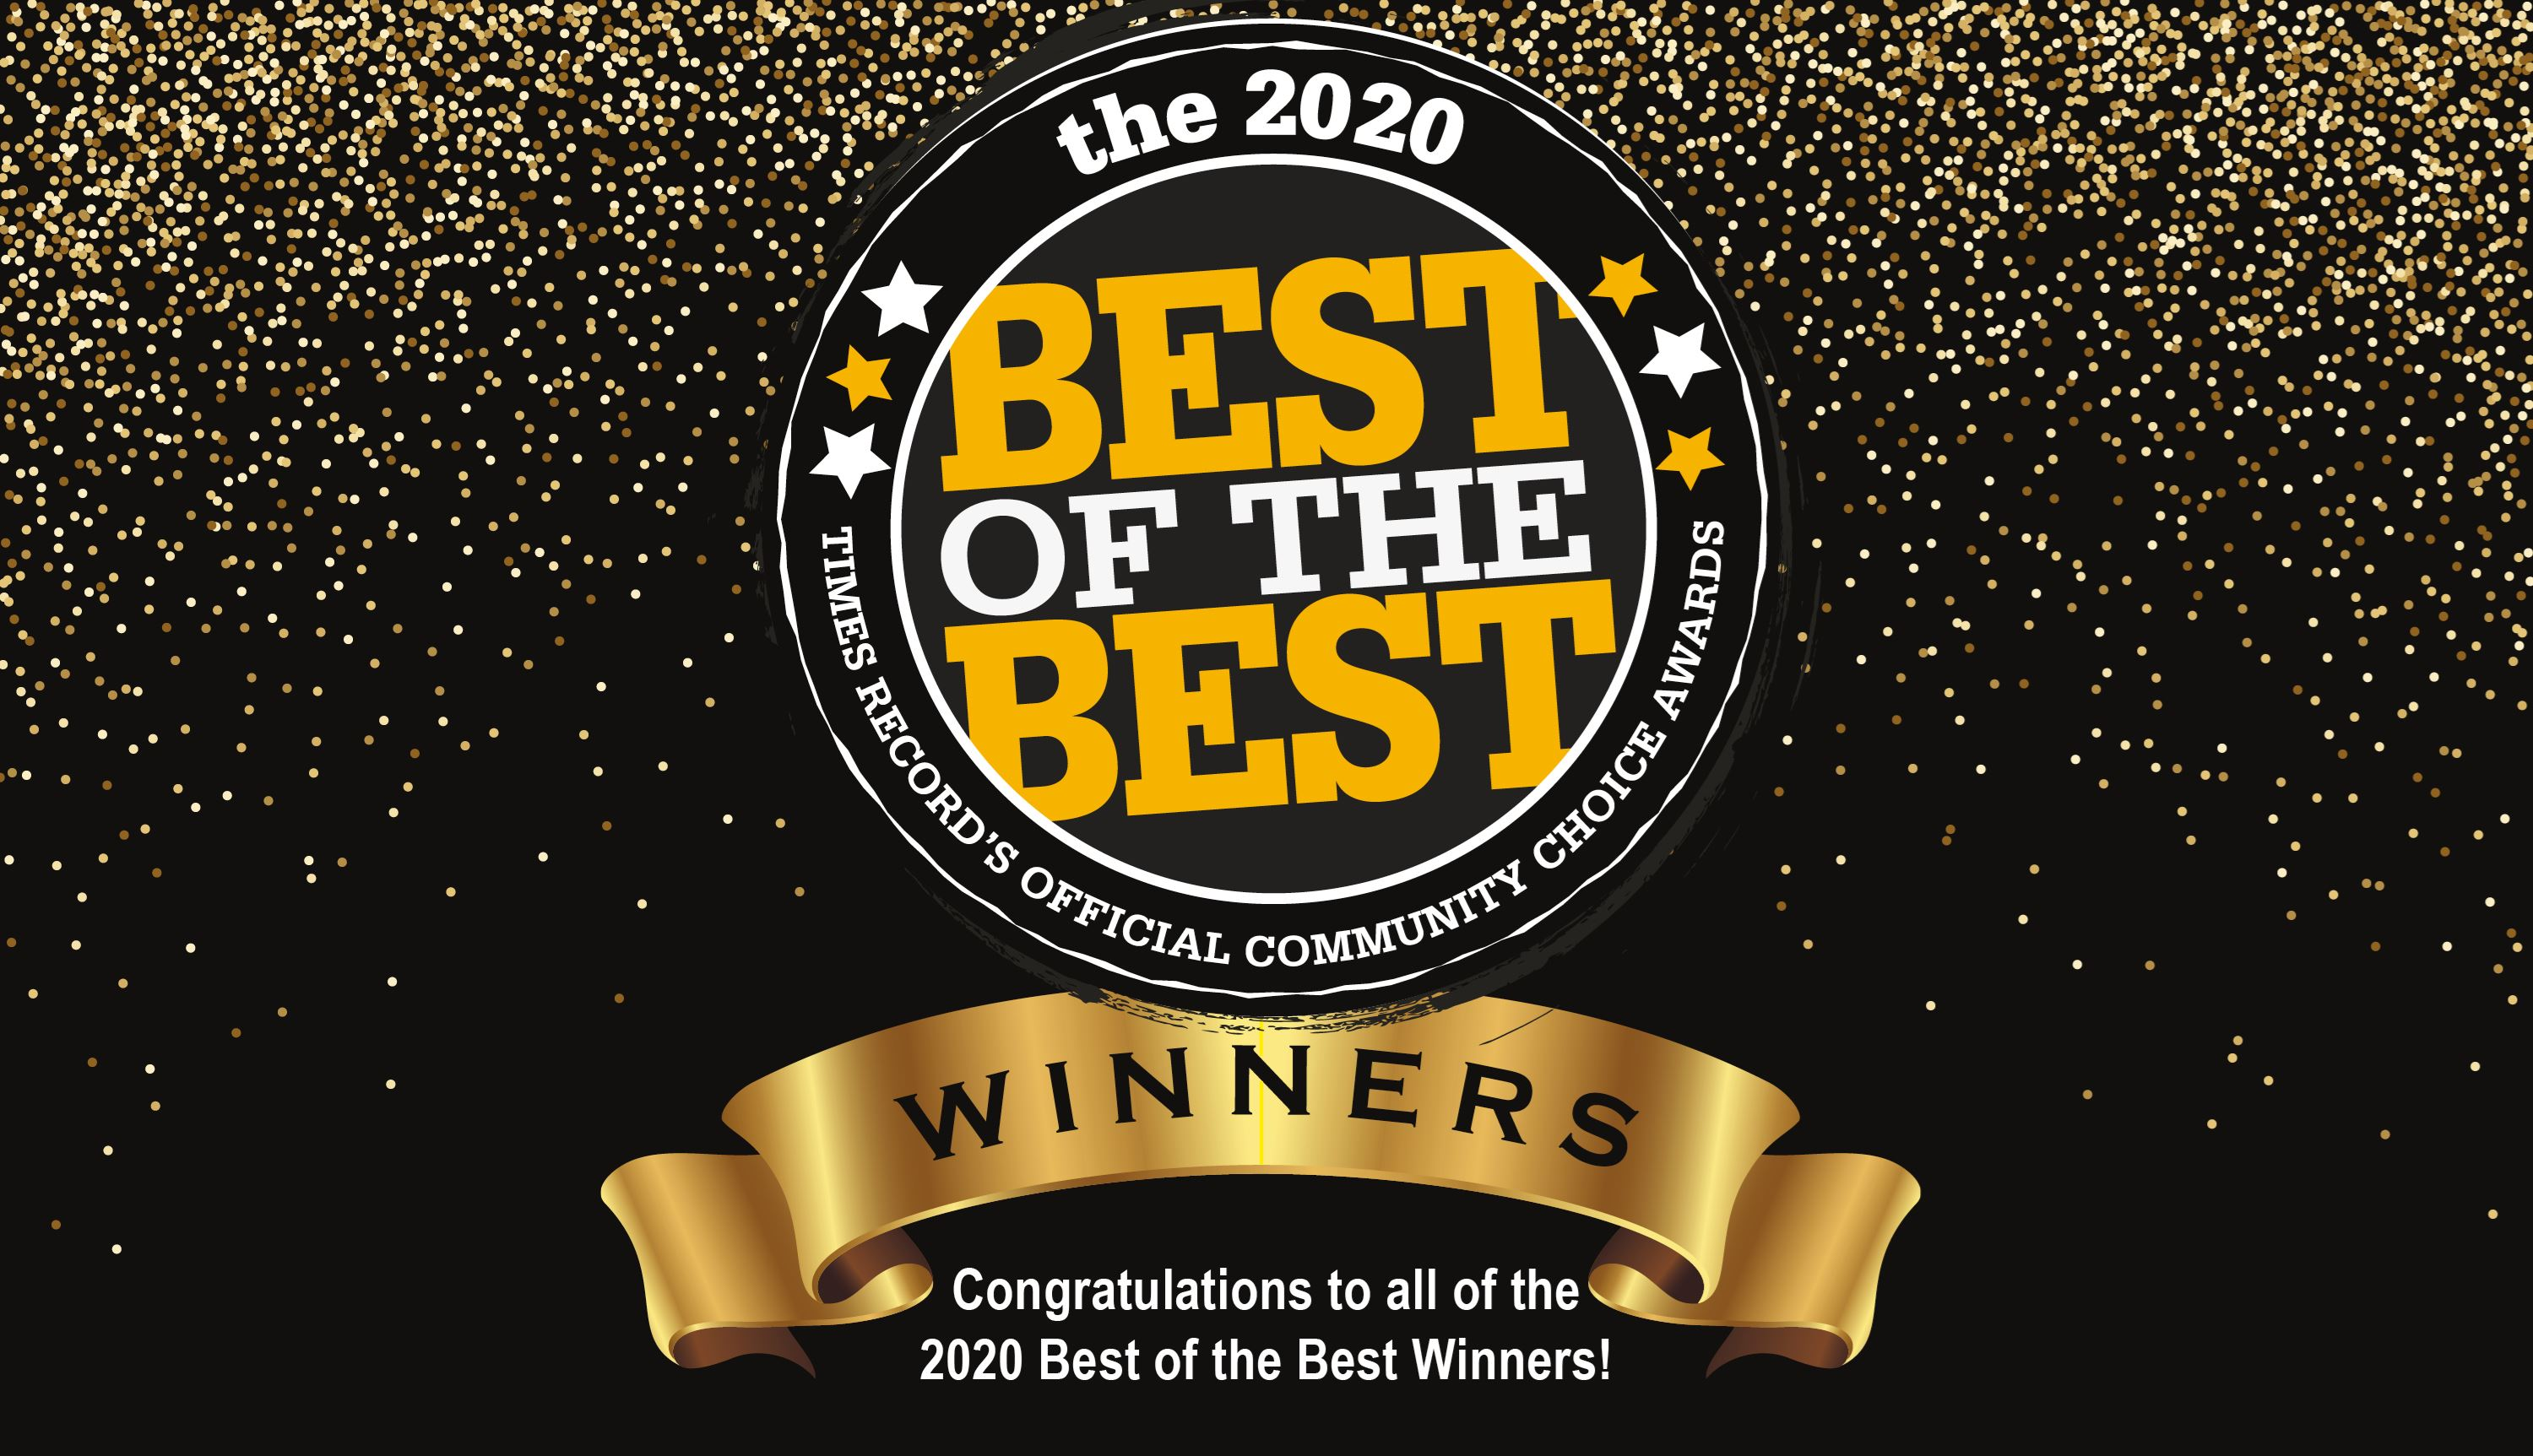 2020 Best Of The Winners Contests And Promotions Times Record Fort Smith Ar